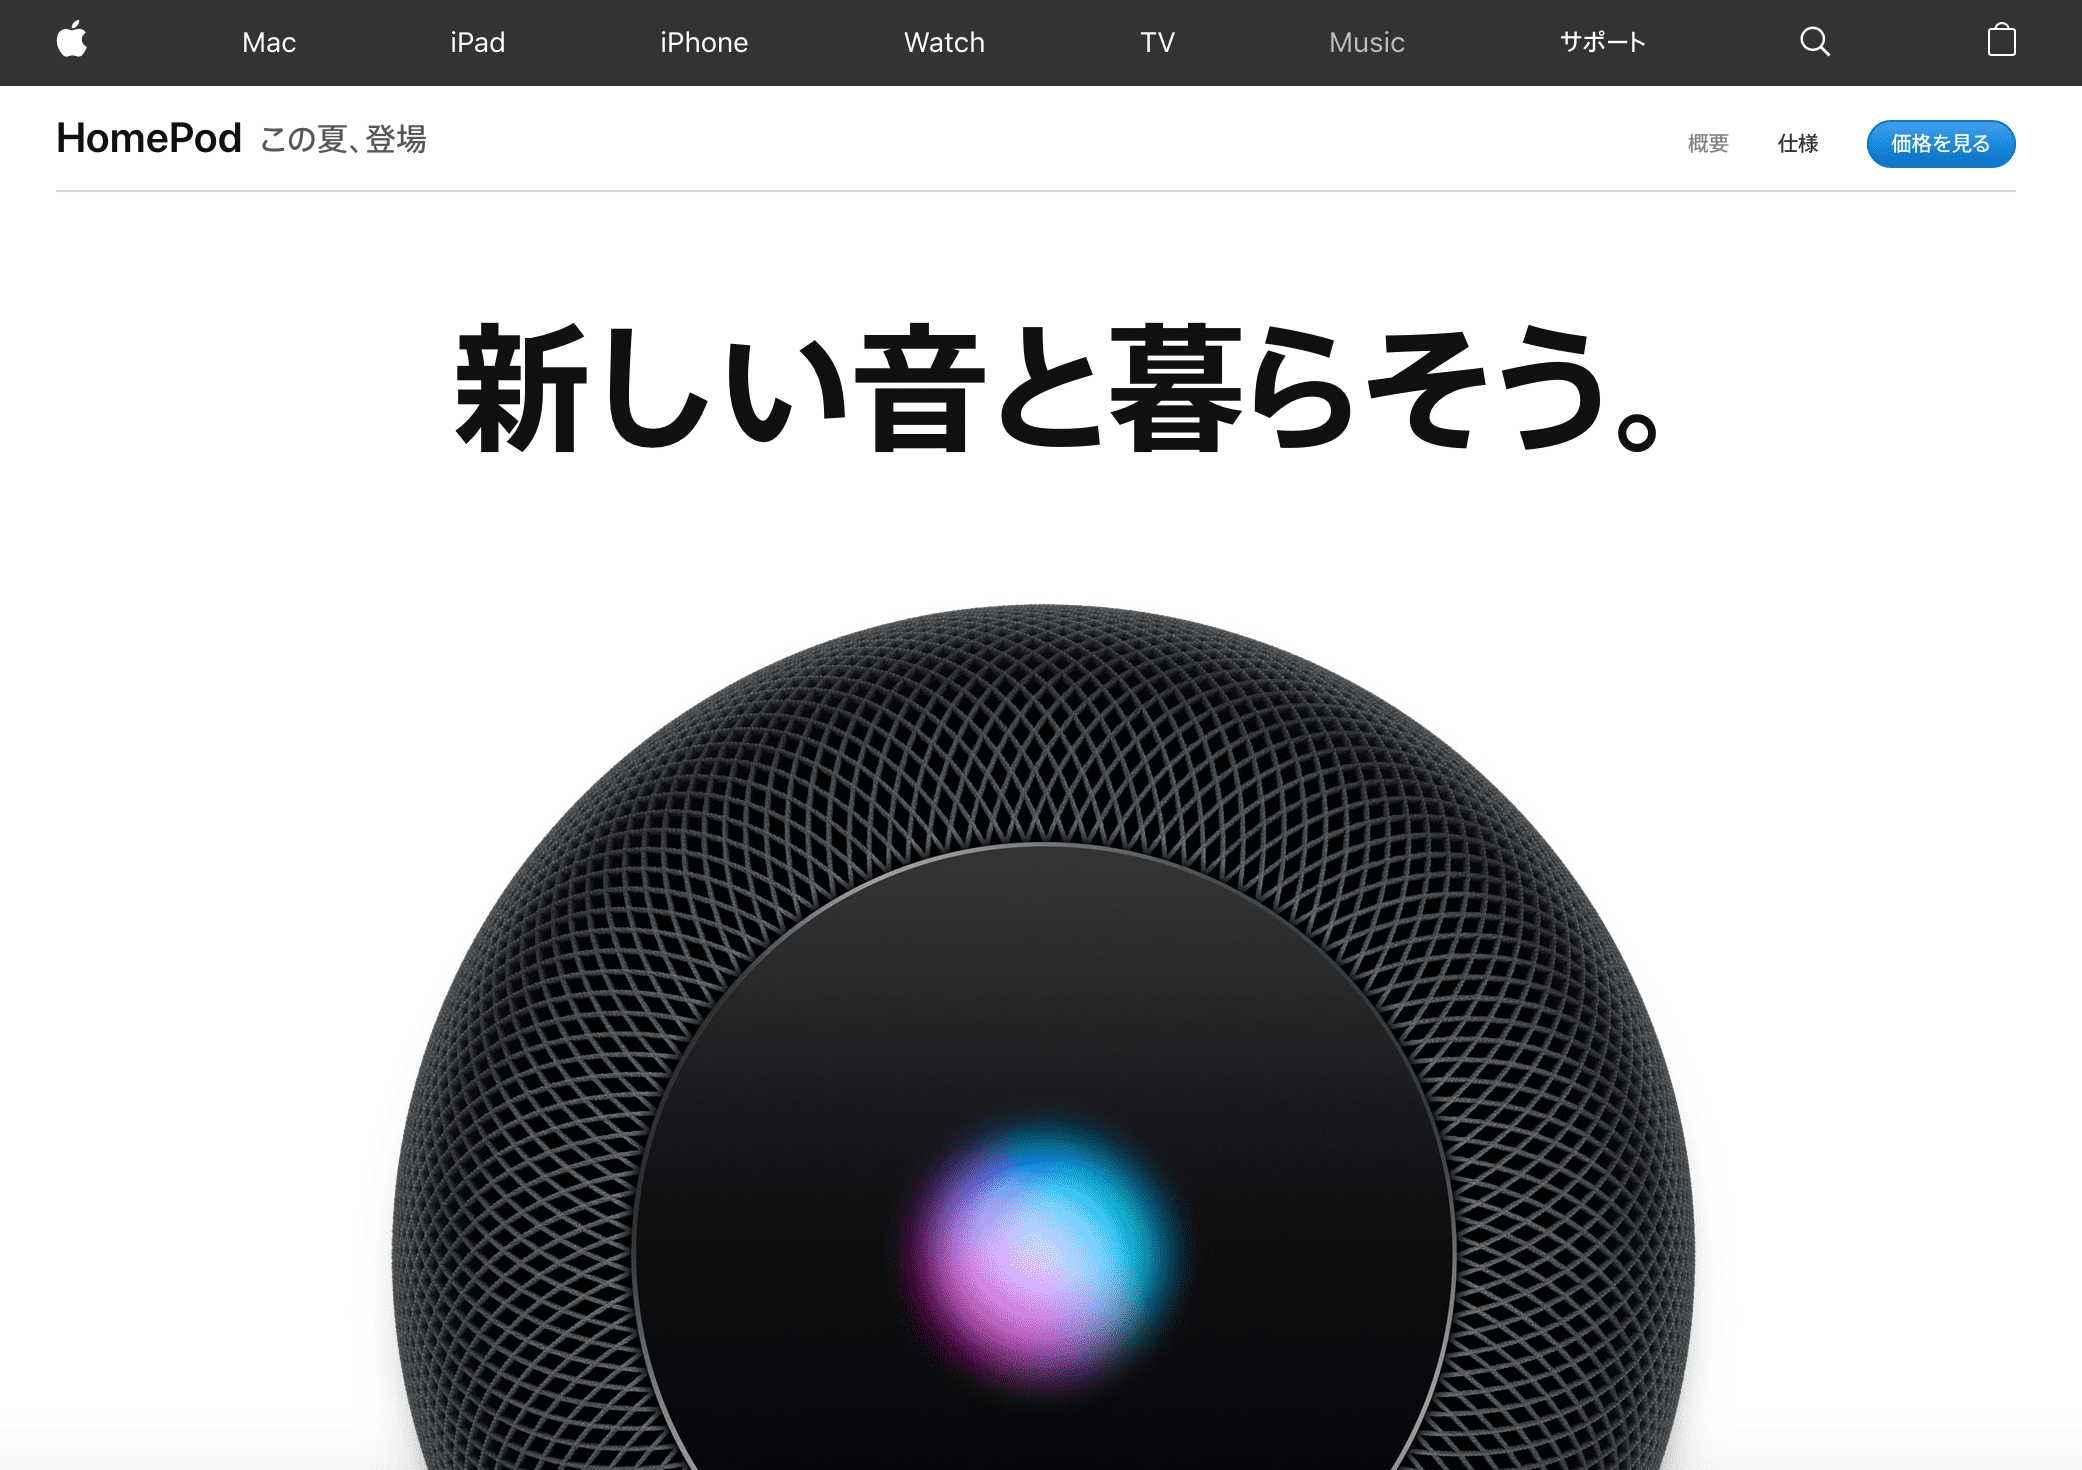 Apple Comfirm Release Homepod Japan Soon Img 1